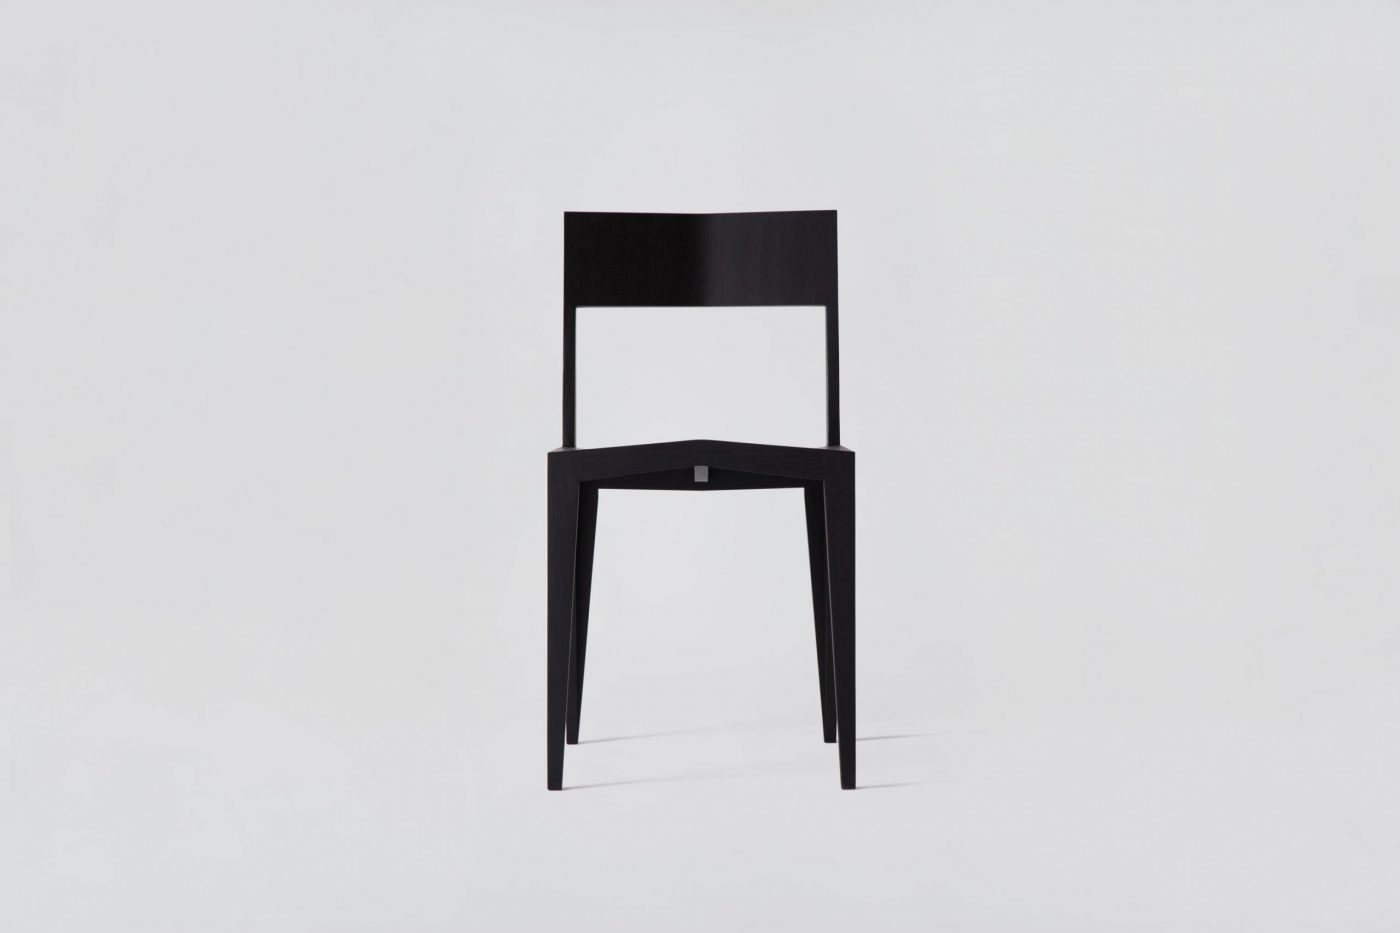 18 MYKILOS WOODEN WOOD DESIGN DESIGNER STUHL HOLZ CHAIR BLACK SCHWARZ NATURAL OILD SCHWARZ scaled